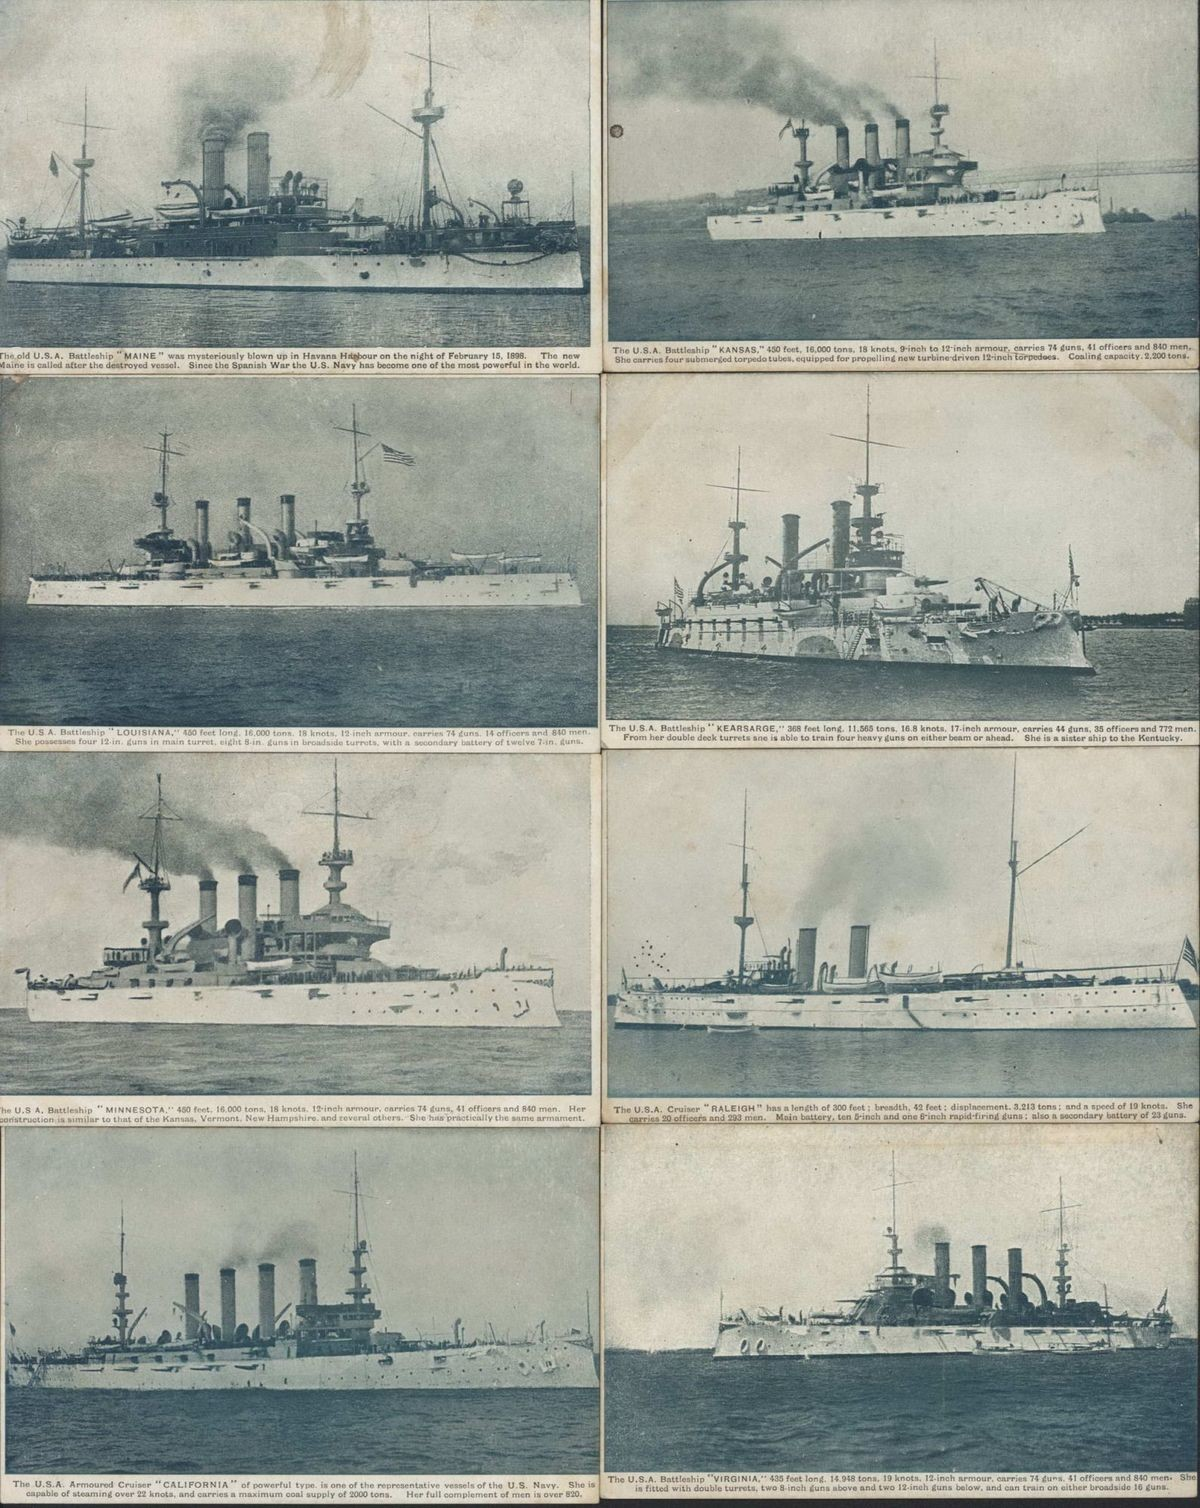 Best Ally. Postcards from the Great White Fleet visit to Australia, 1907... The fun fact about this is that the tech in ships were moving so fast that by the time they ended their world tour the ships are already outdated